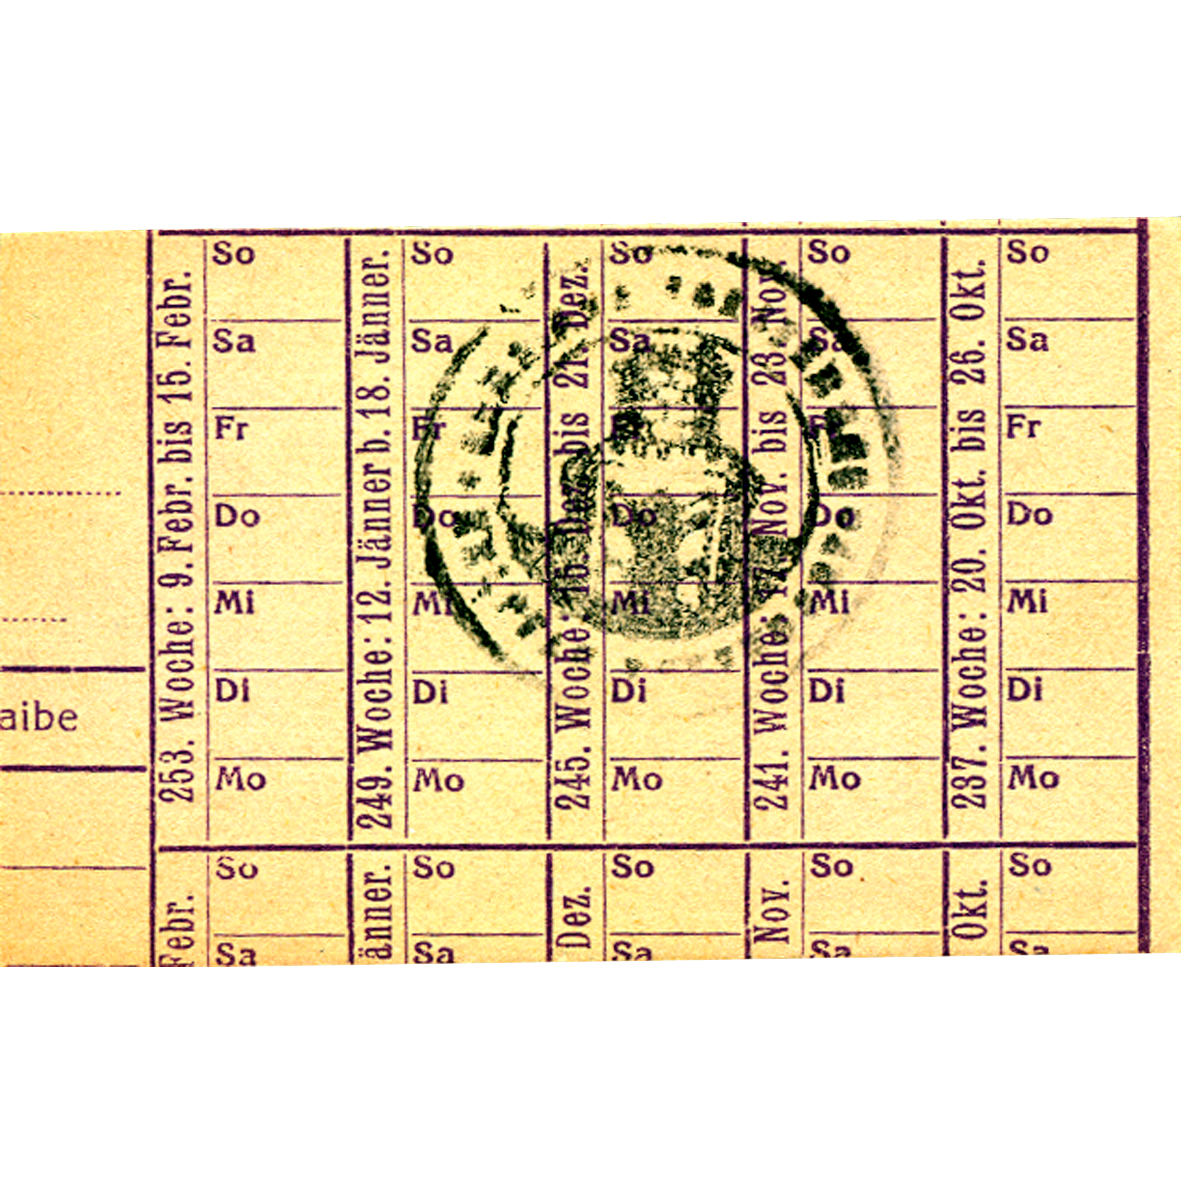 Republic of Austria, Community of Helpfau-Uttendorf, 50 Heller 1920 (reverse)